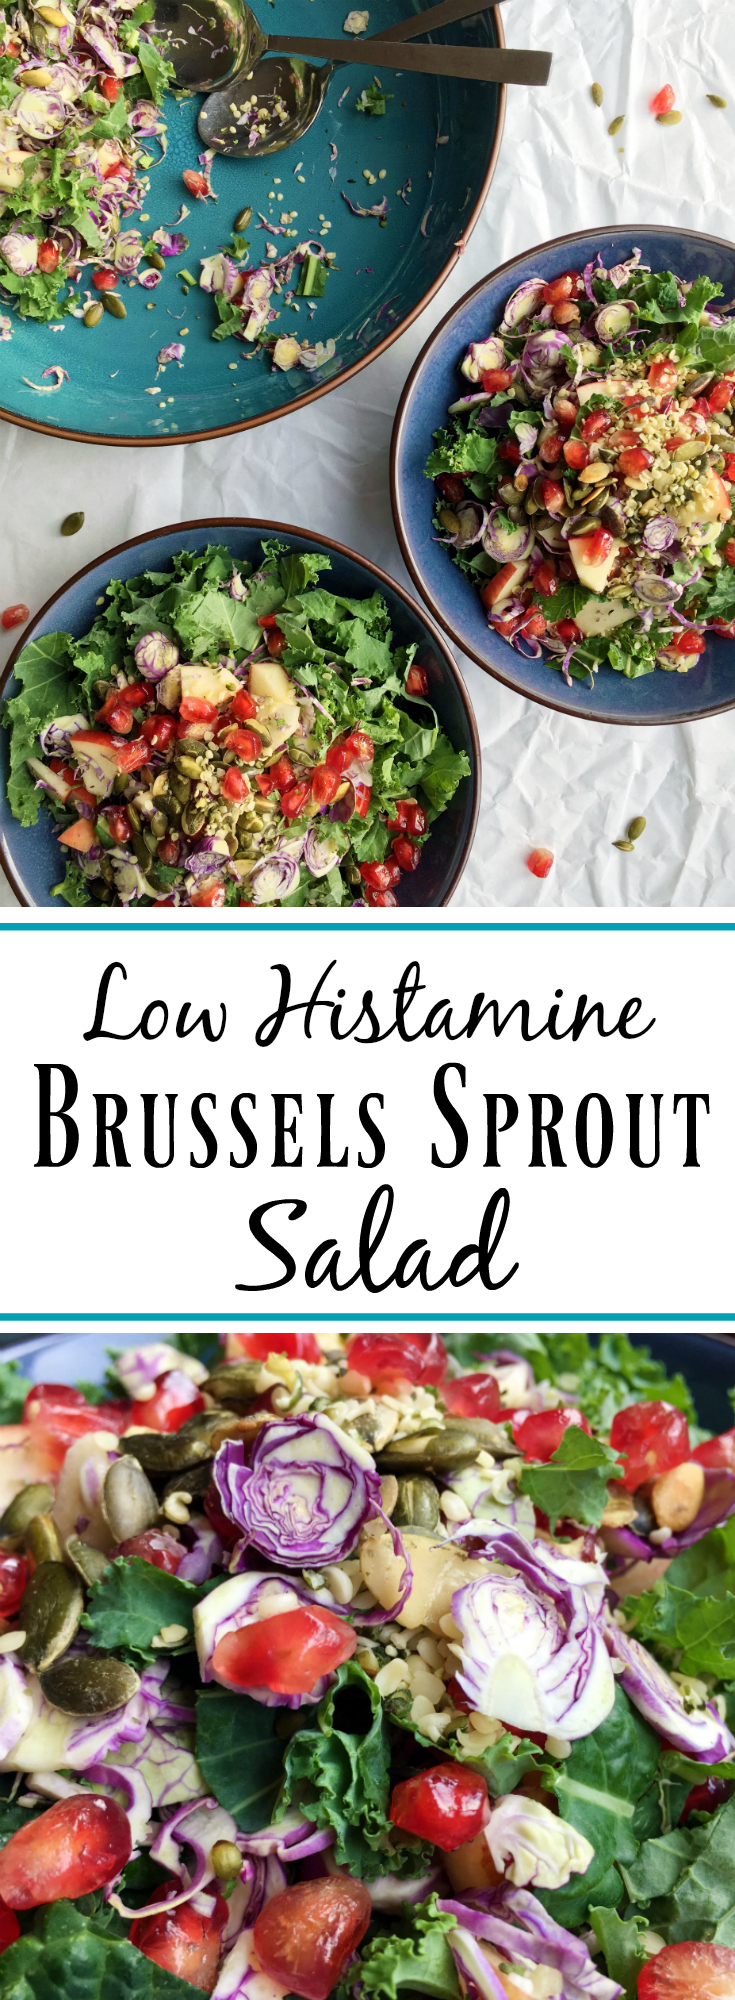 Low Histamine Brussels Sprout Salad. Pin Me!